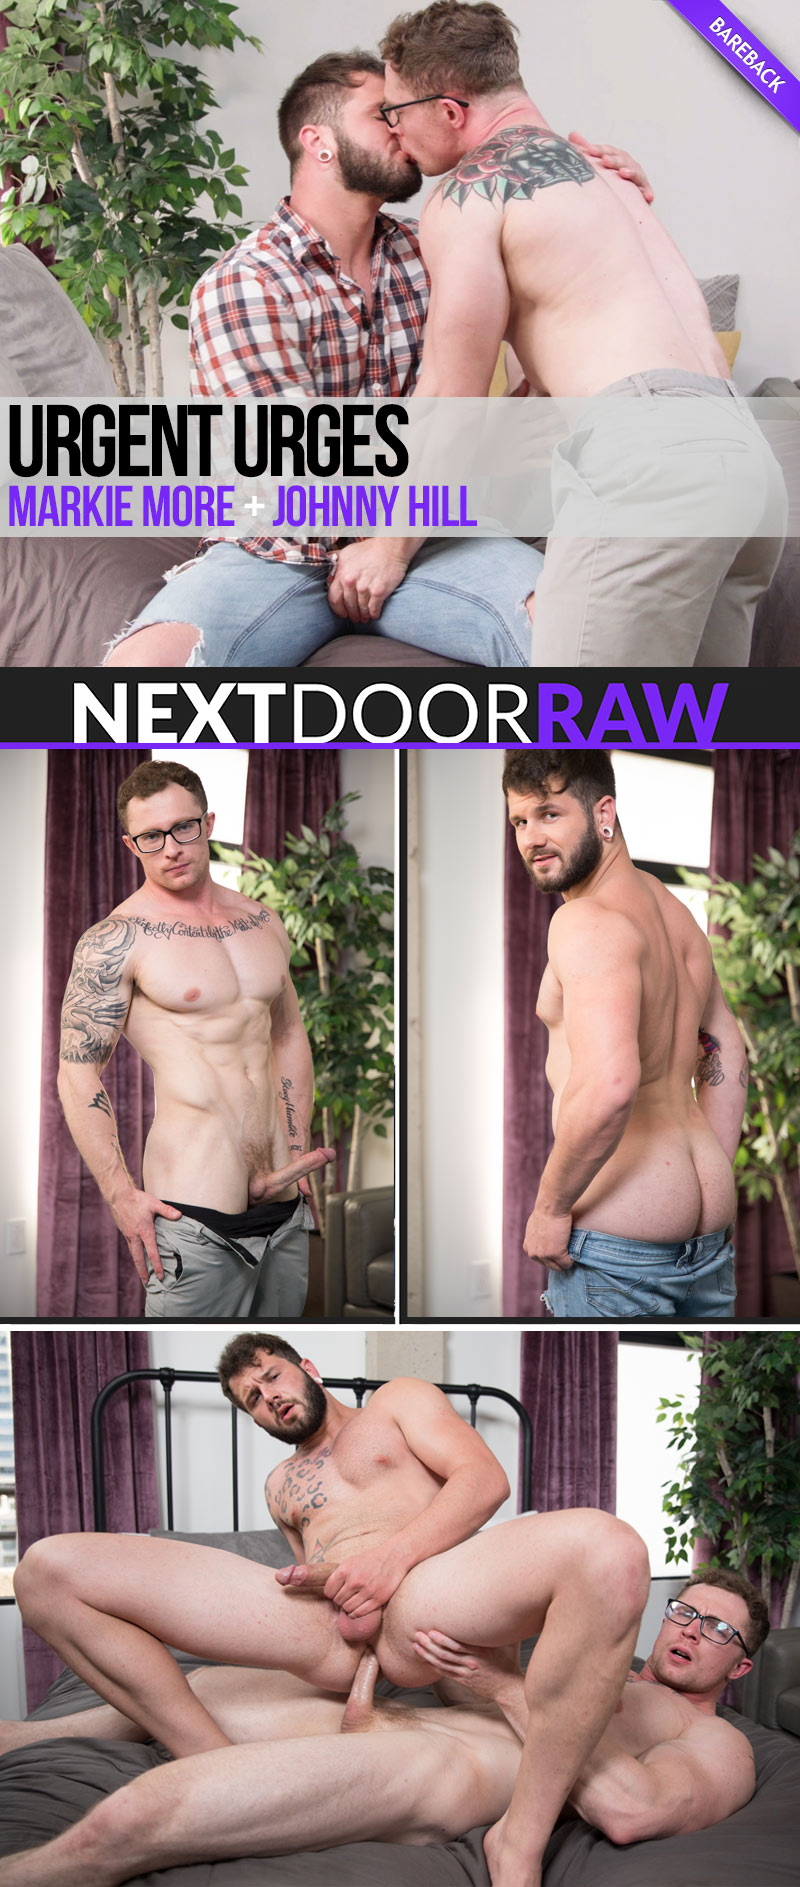 Urgent Urges (Markie More Fucks Johnny Hill) at NextDoorRAW!